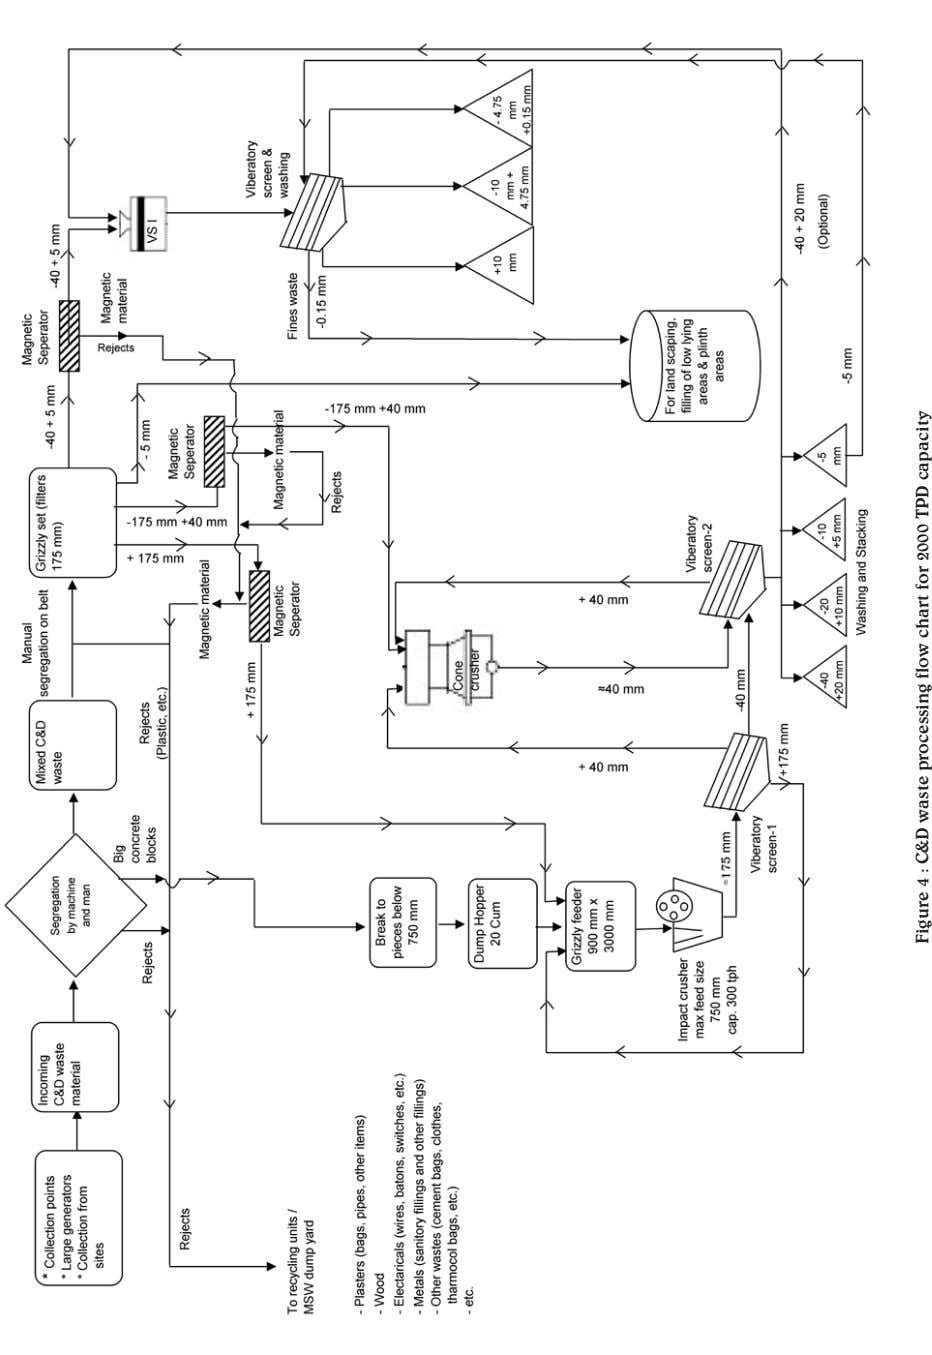 Figure 4 : C&D waste processing flow chart for 2000 TPD capacity